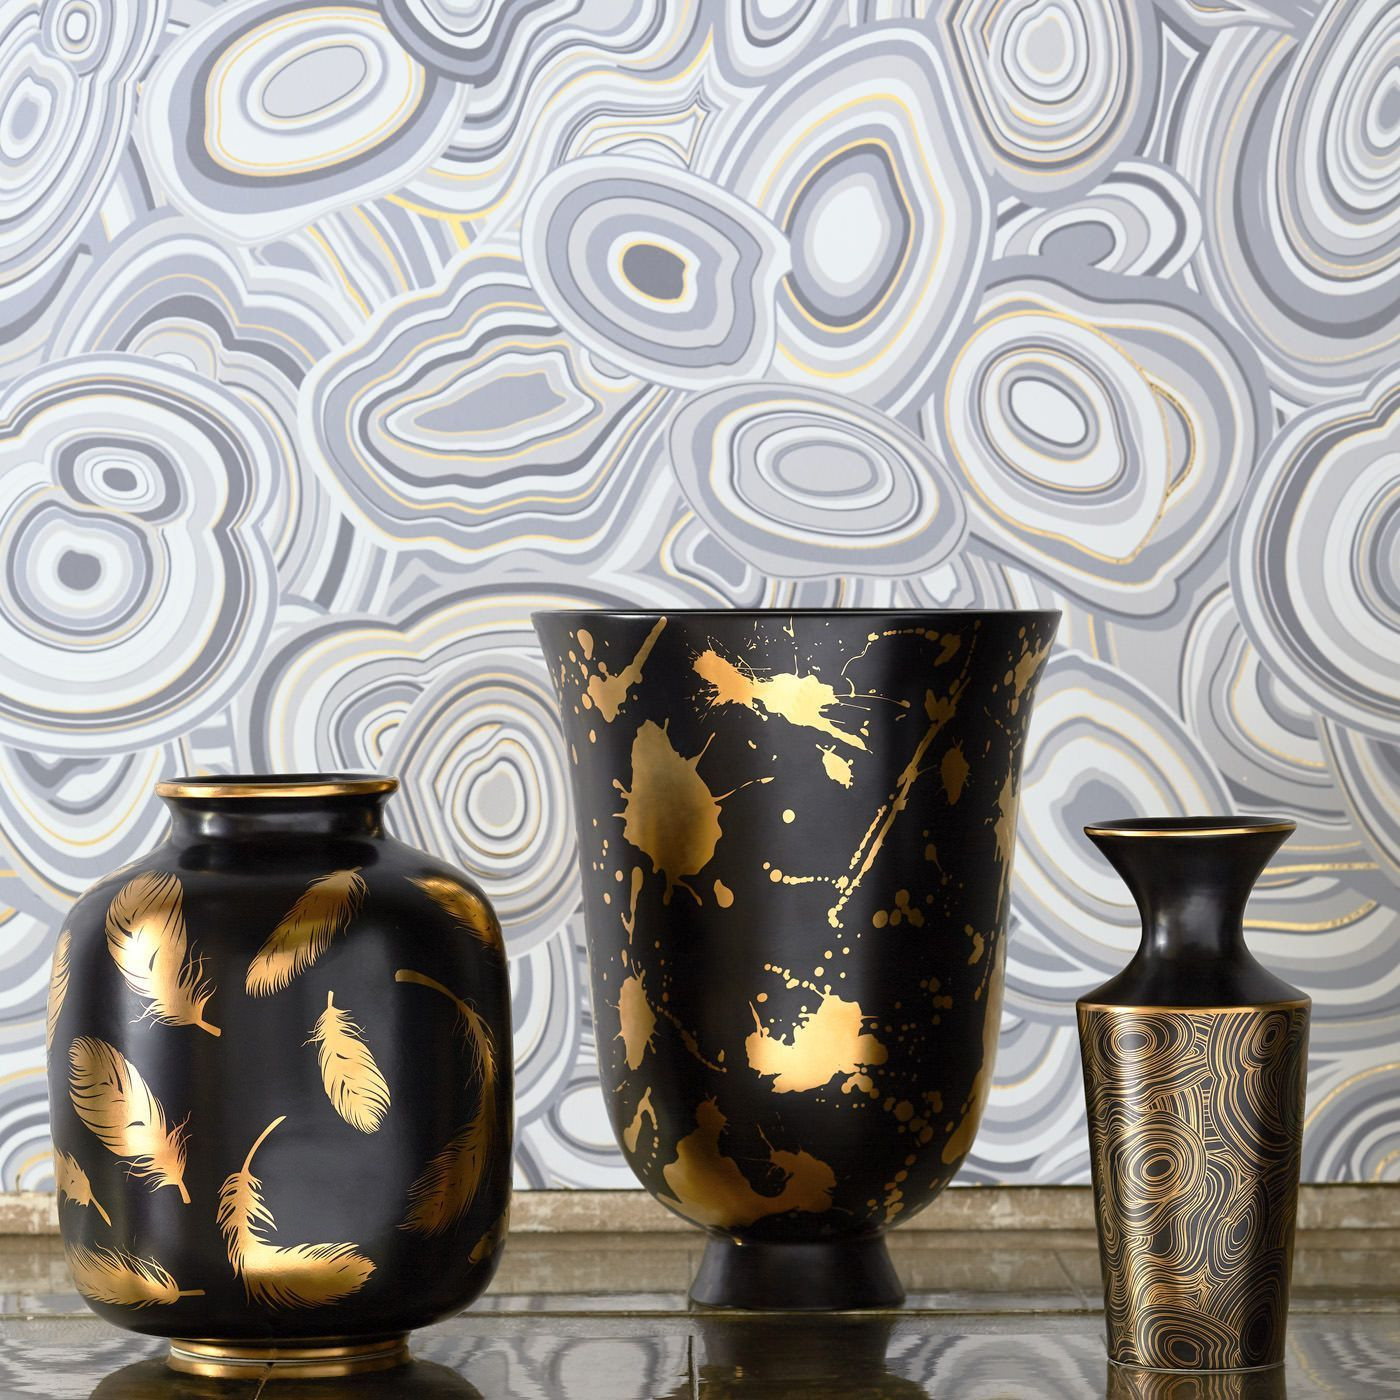 cyan design vases of 44 gold and silver vase the weekly world within futura feathers vase modern pottery jonathan adler